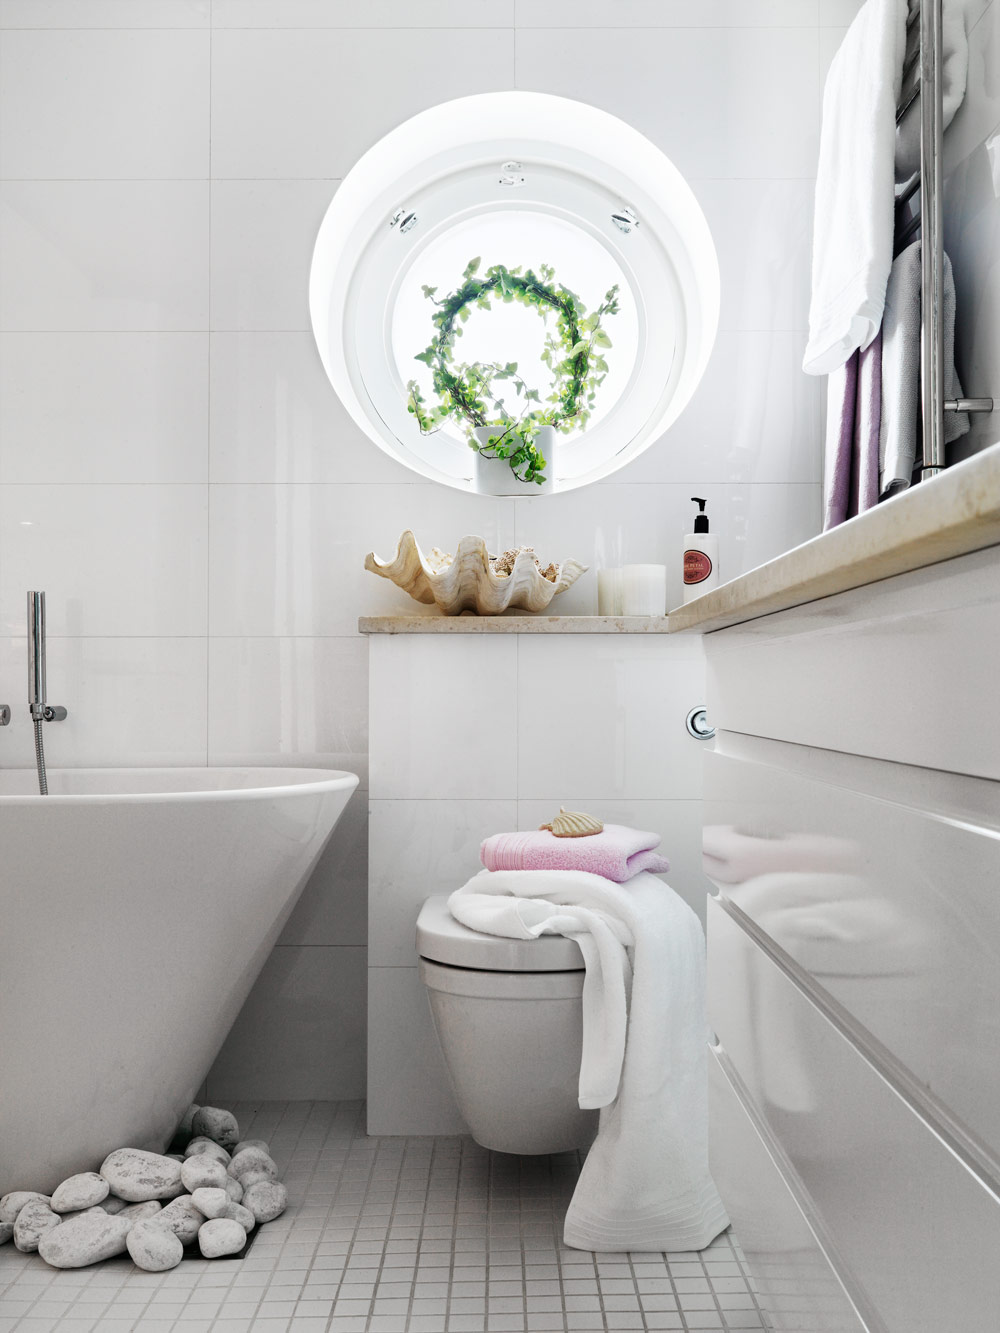 Stylish small bathroom with an unusual decor digsdigs for Small bath ideas